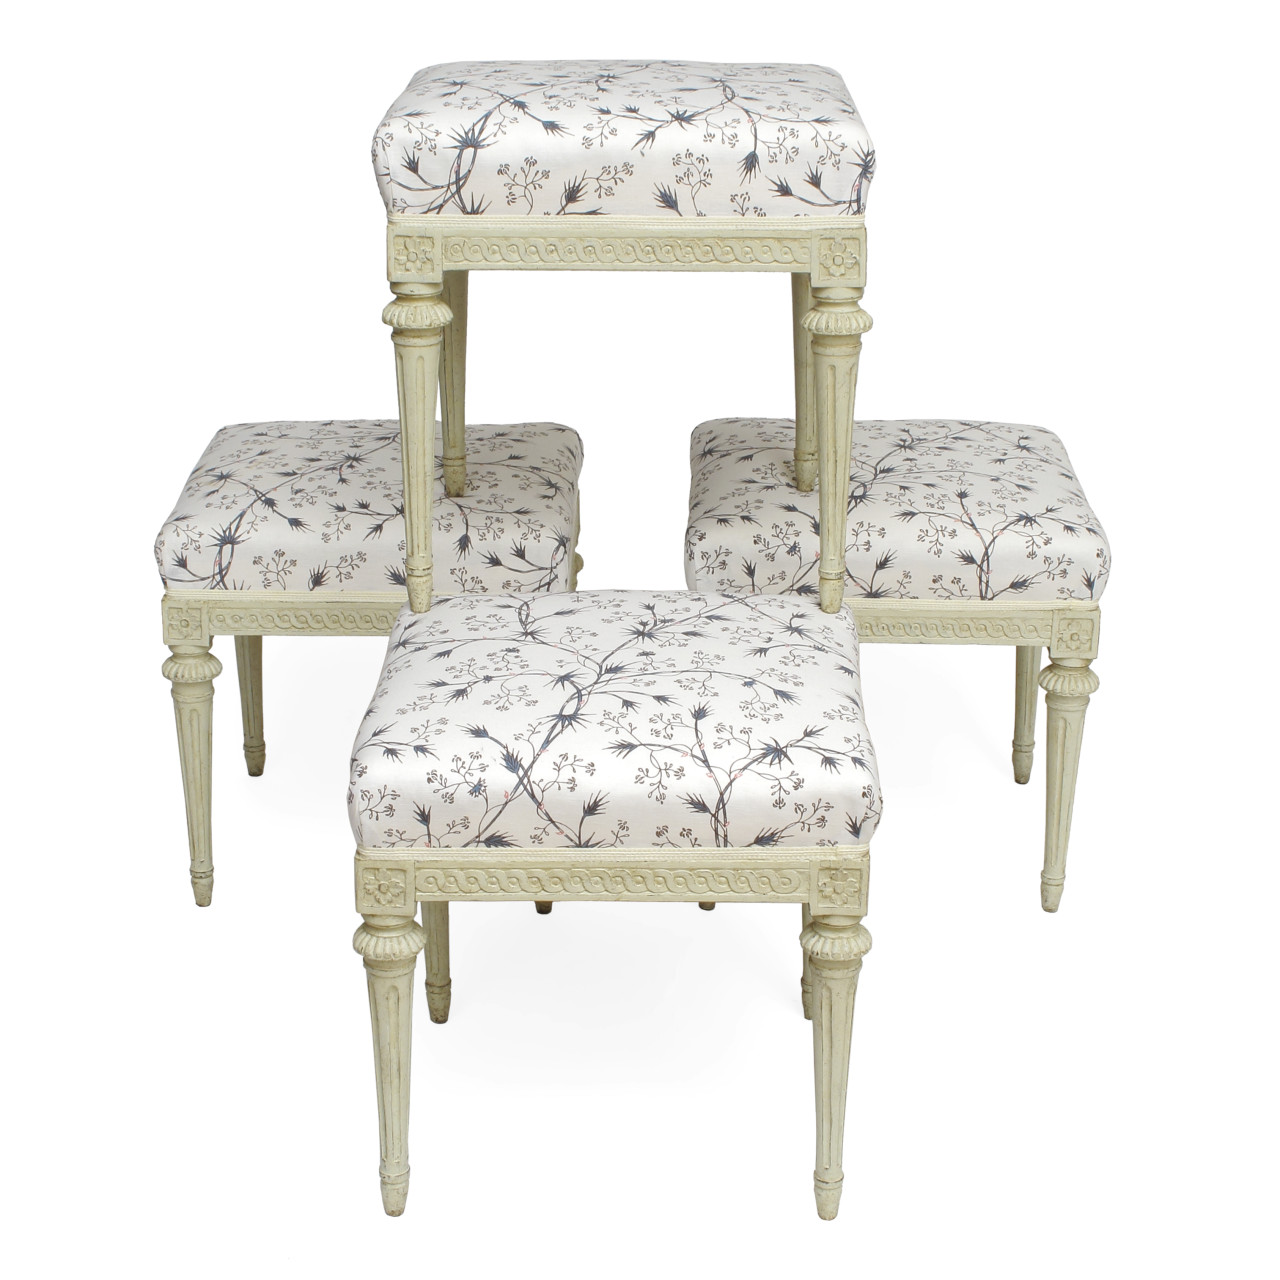 A set of four Gustavian stools